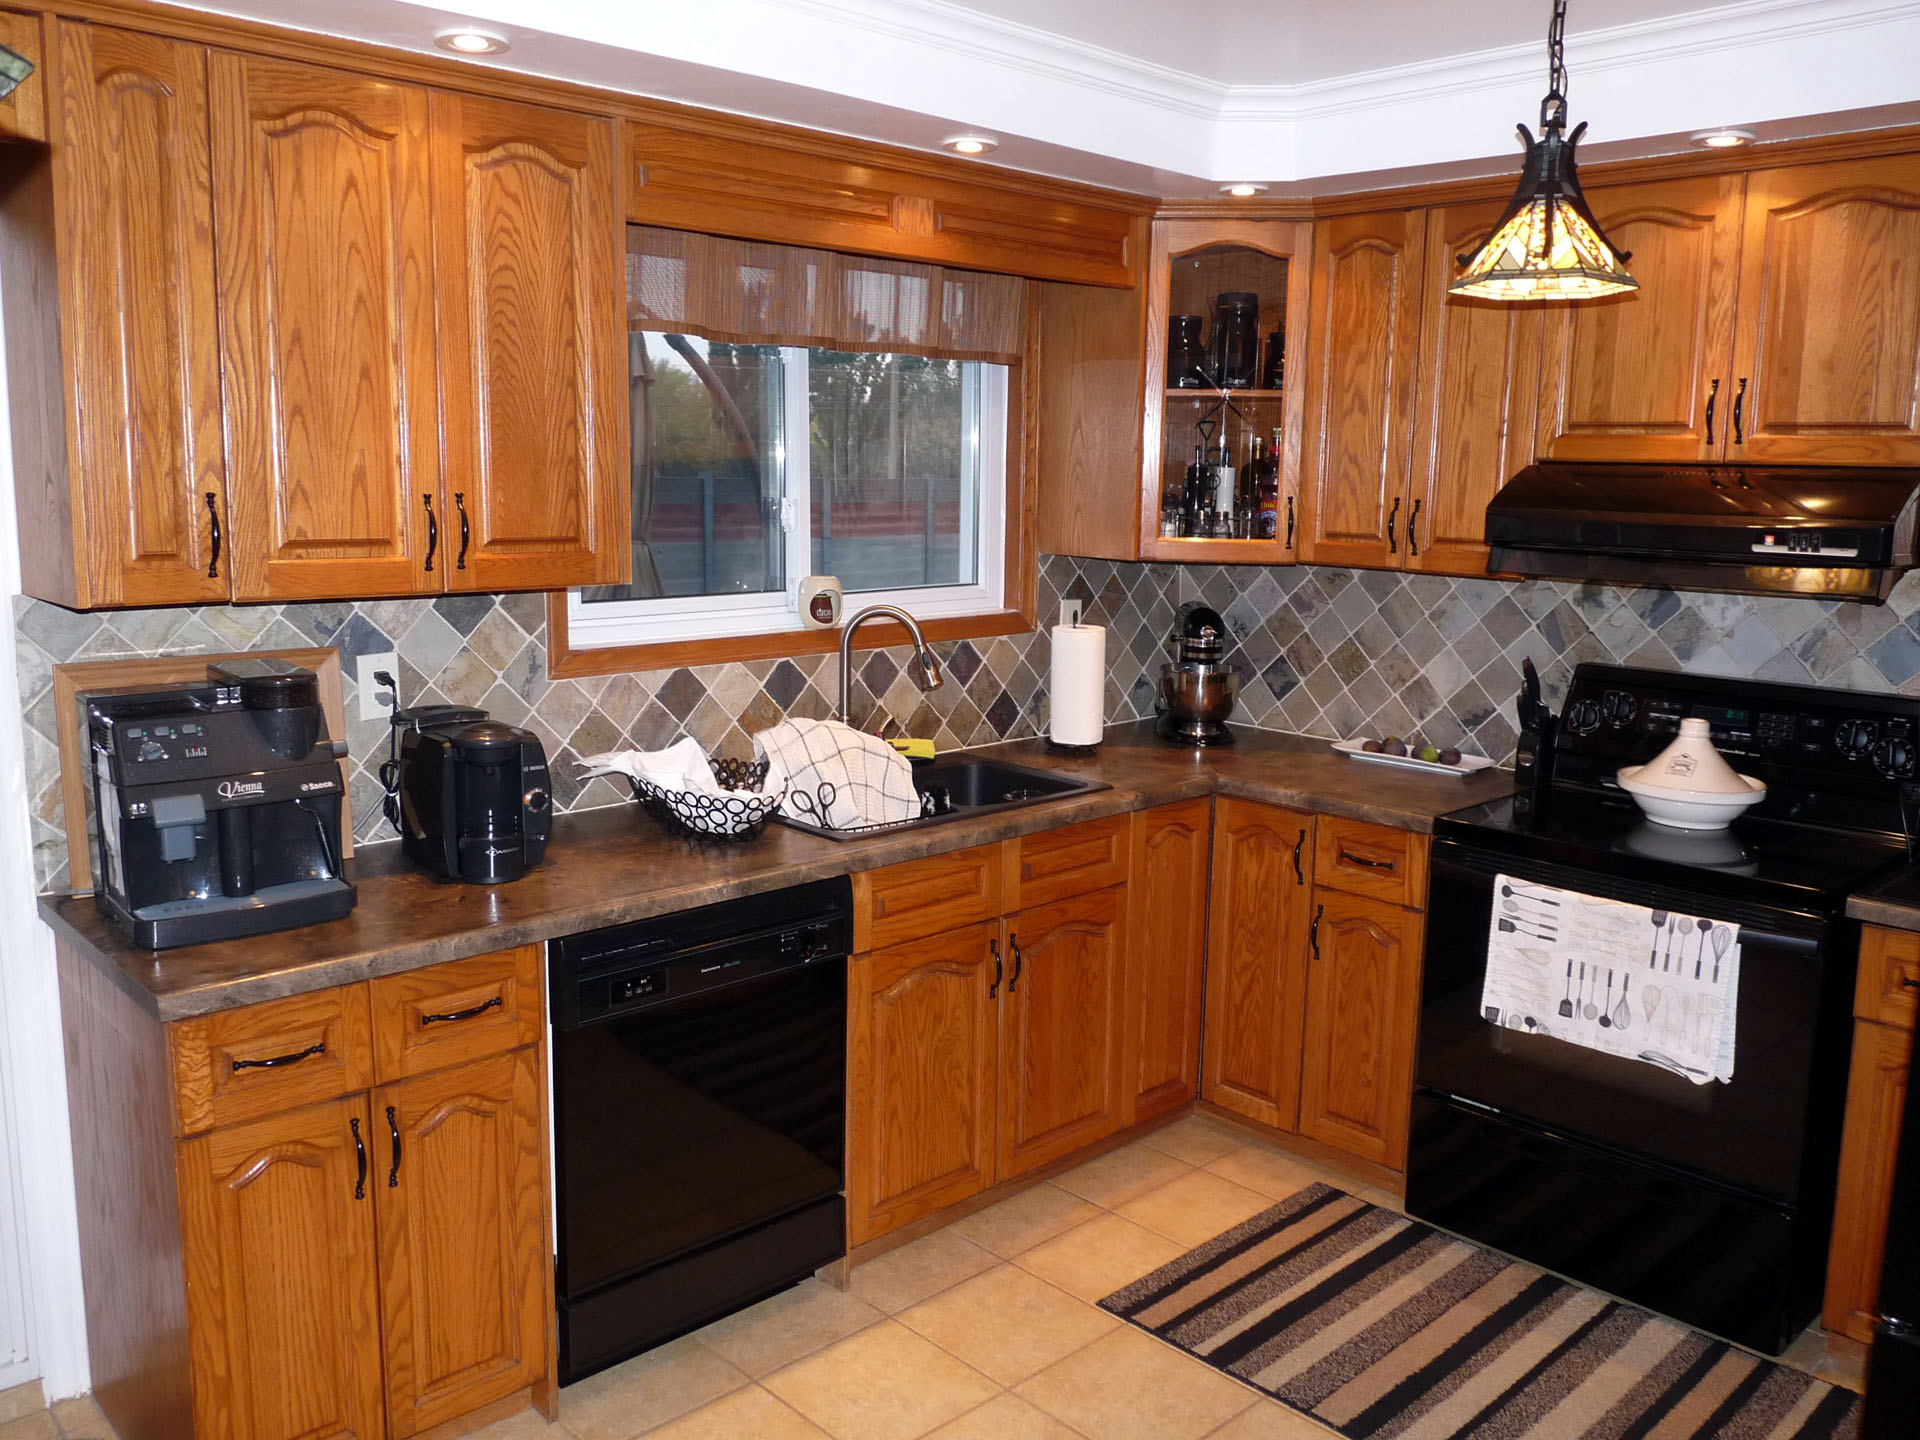 Pictures Of Refinished Kitchen Cabinets